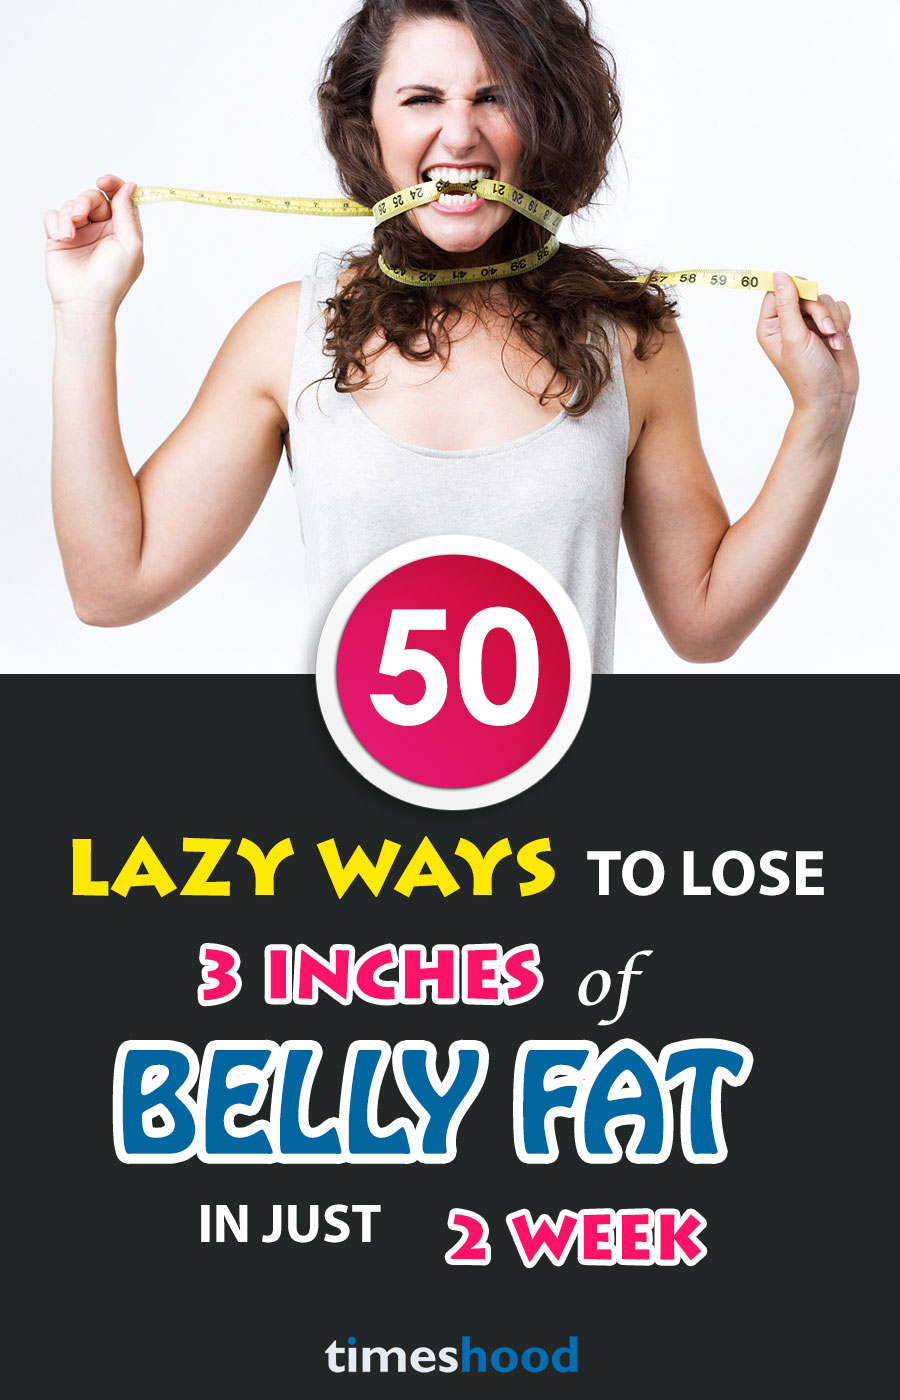 50 Lazy Ways To Lose 3 Inches Of Belly Fat In 2 Weeks Timeshood